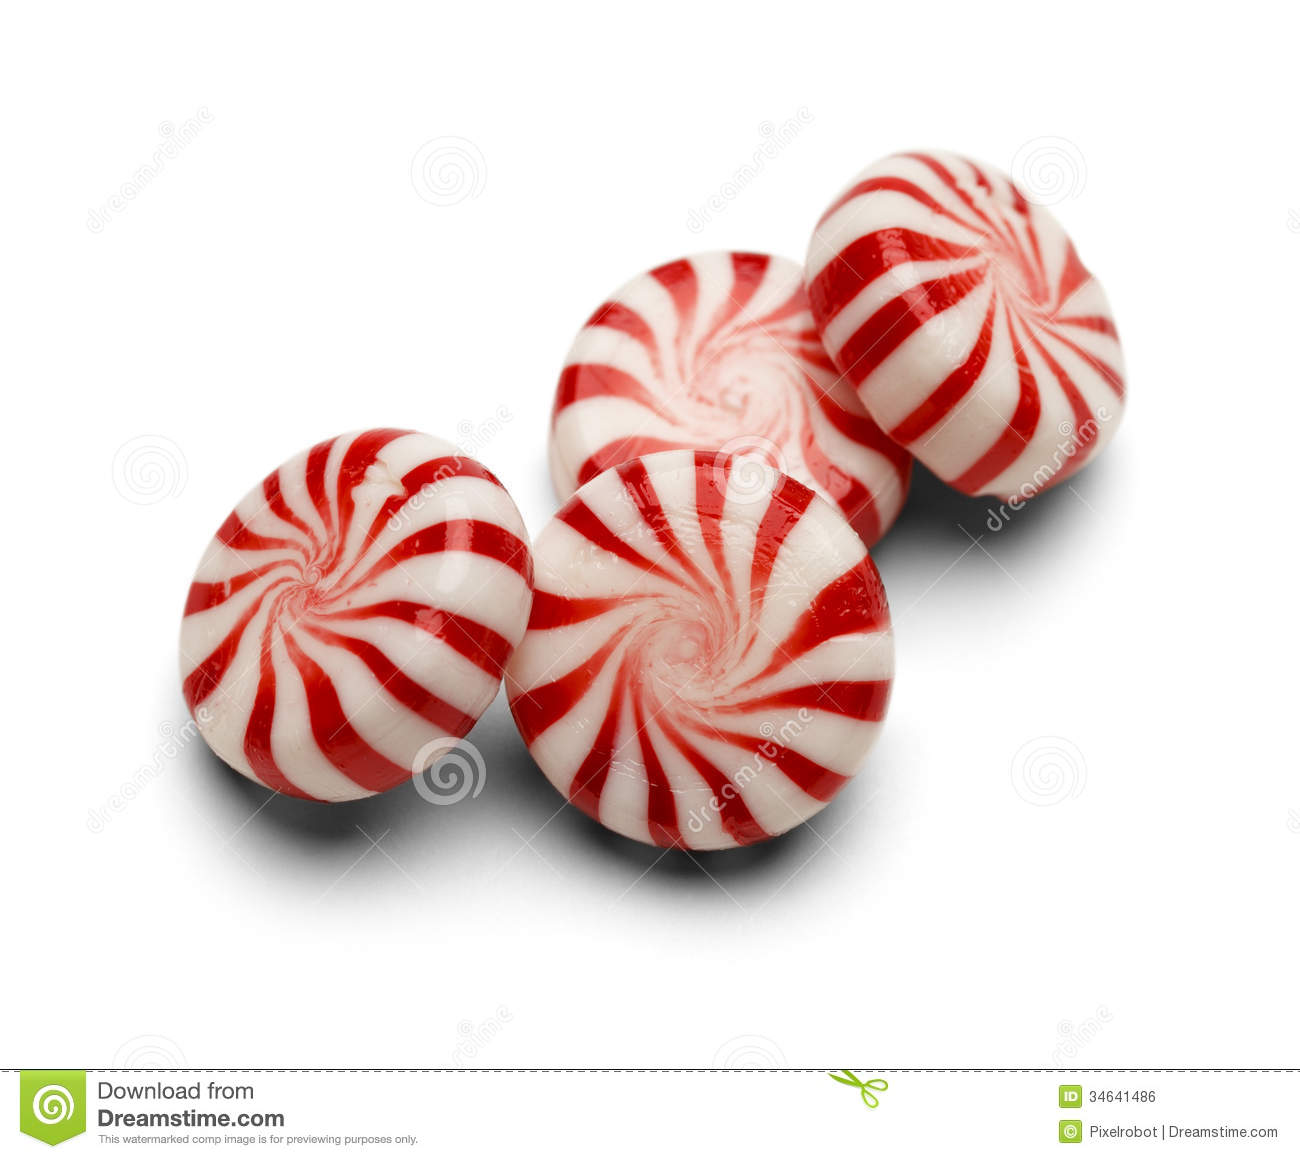 Peppermint Candy Royalty Free Stock Image - Image: 34641486